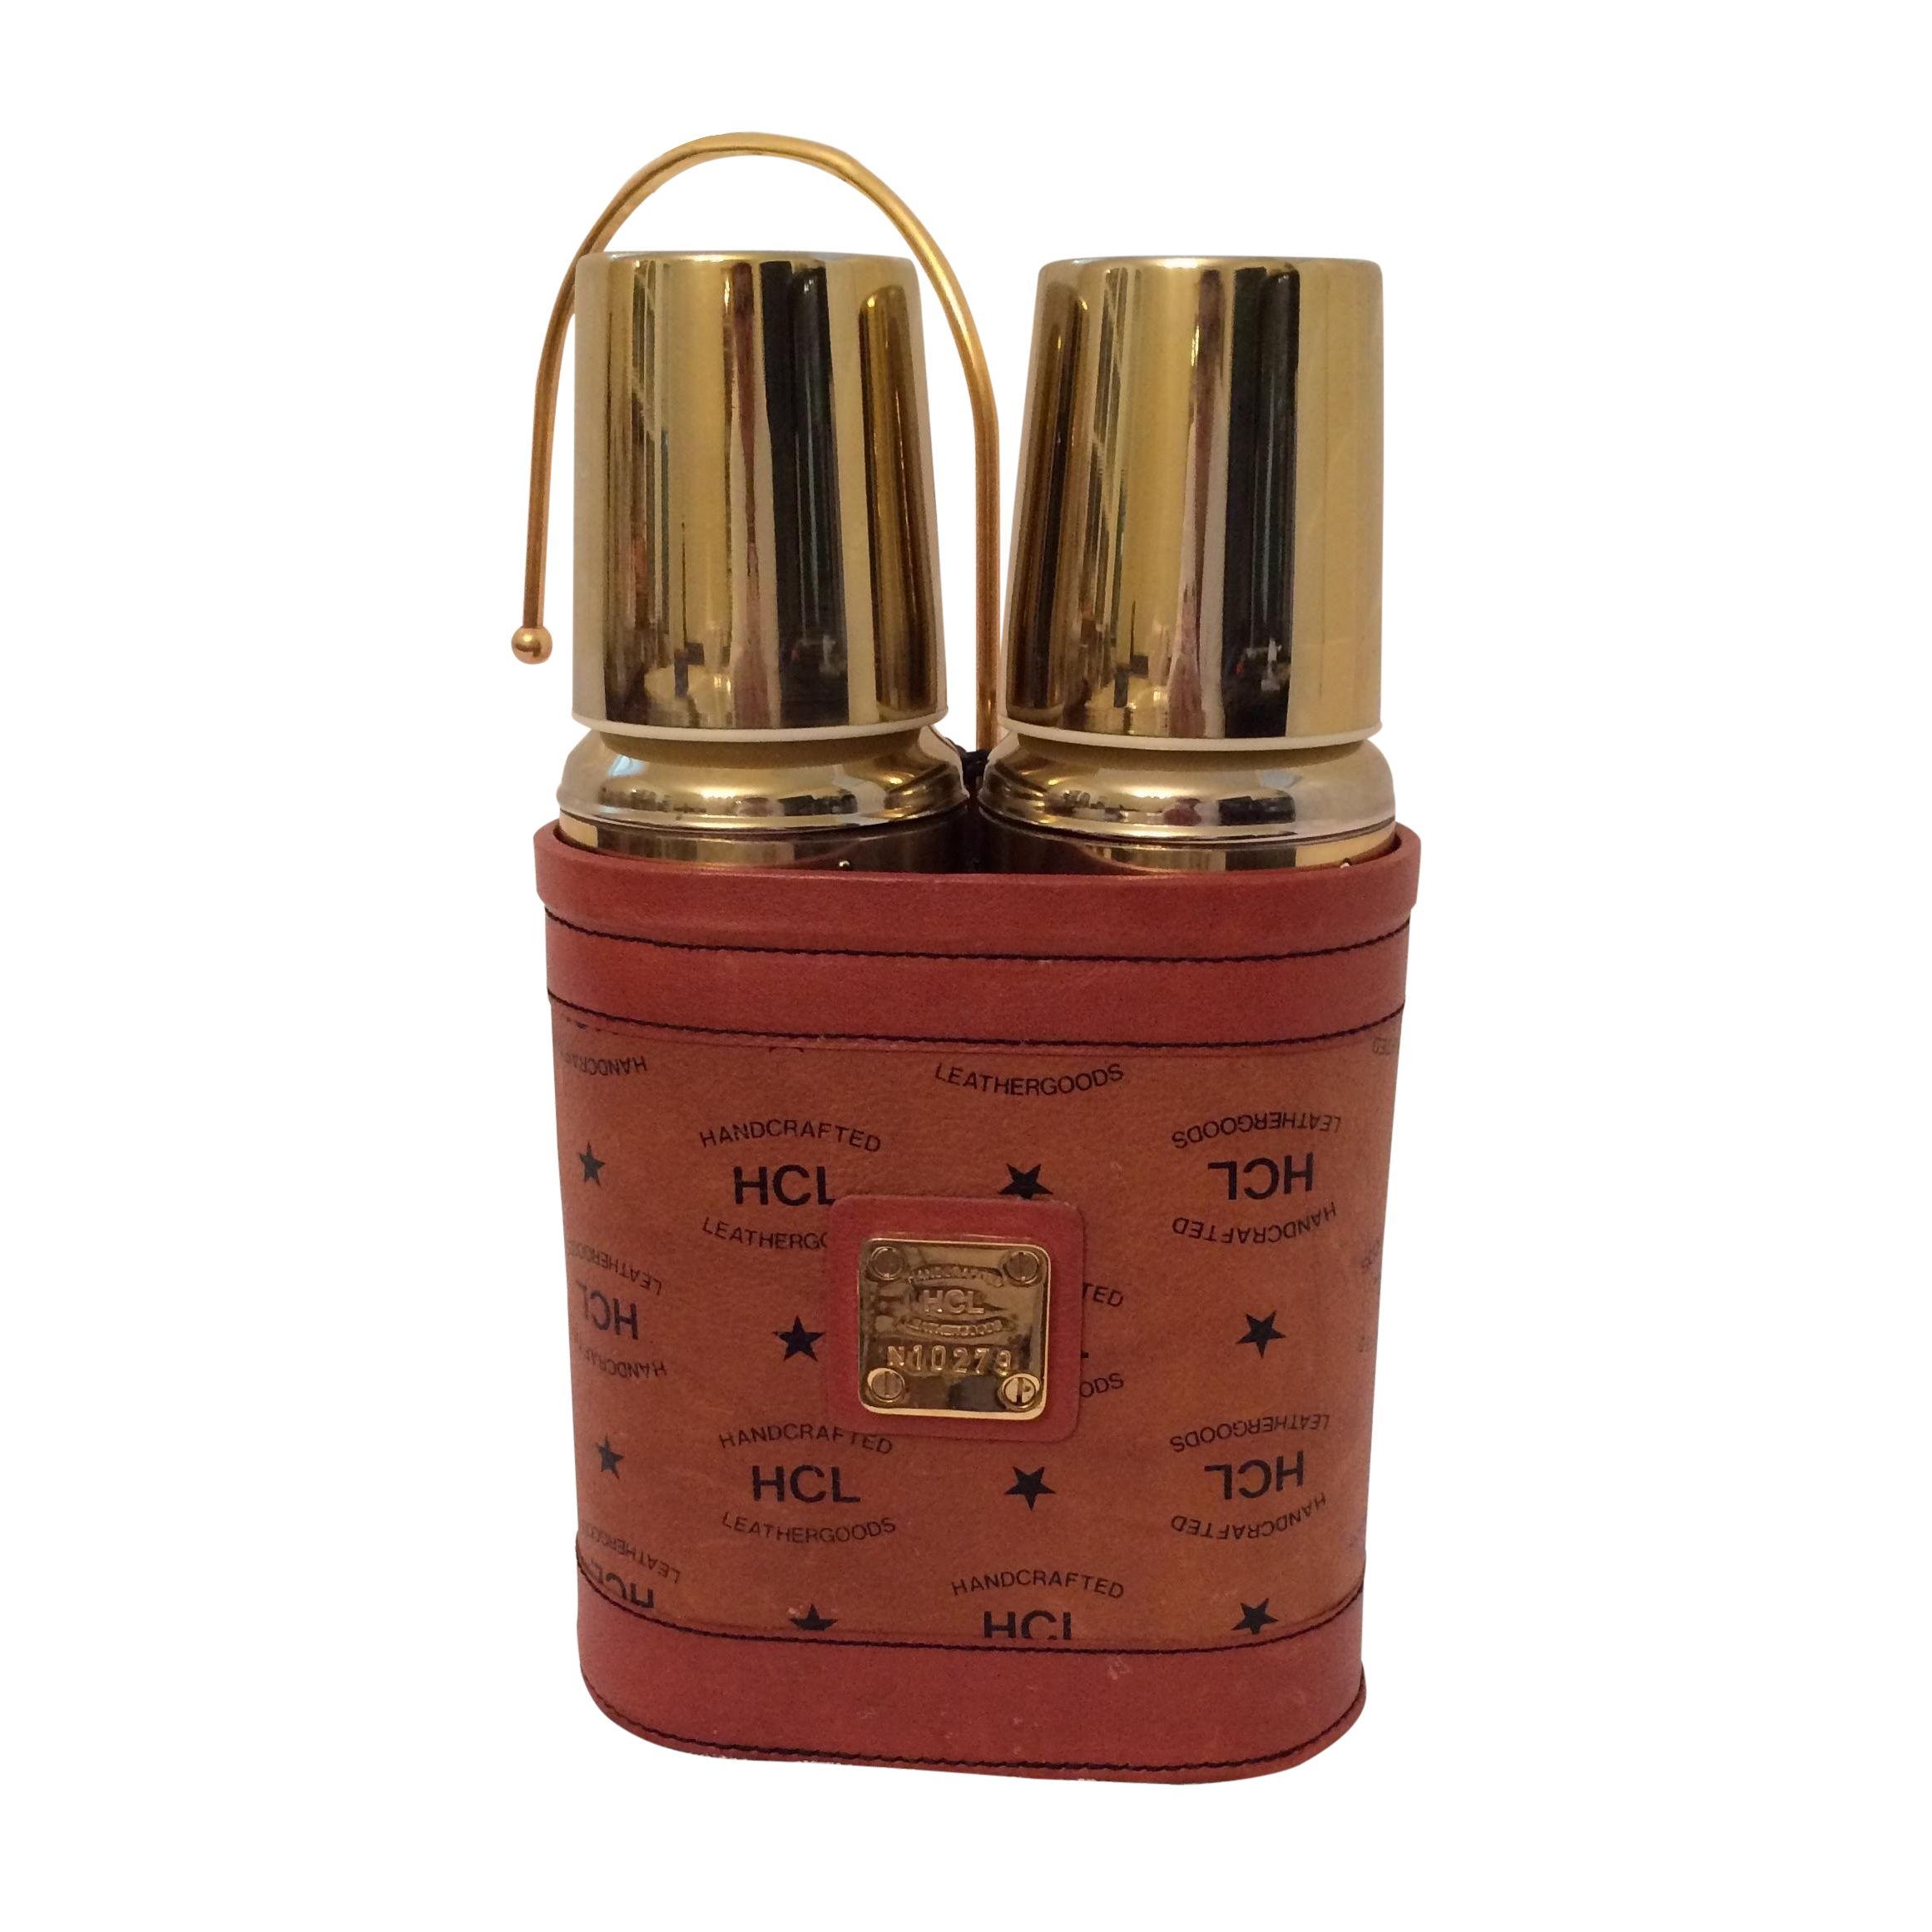 Hcl handcrafted leather goods - Image Of Hcl Handcrafted Leather Goods Beverage Container